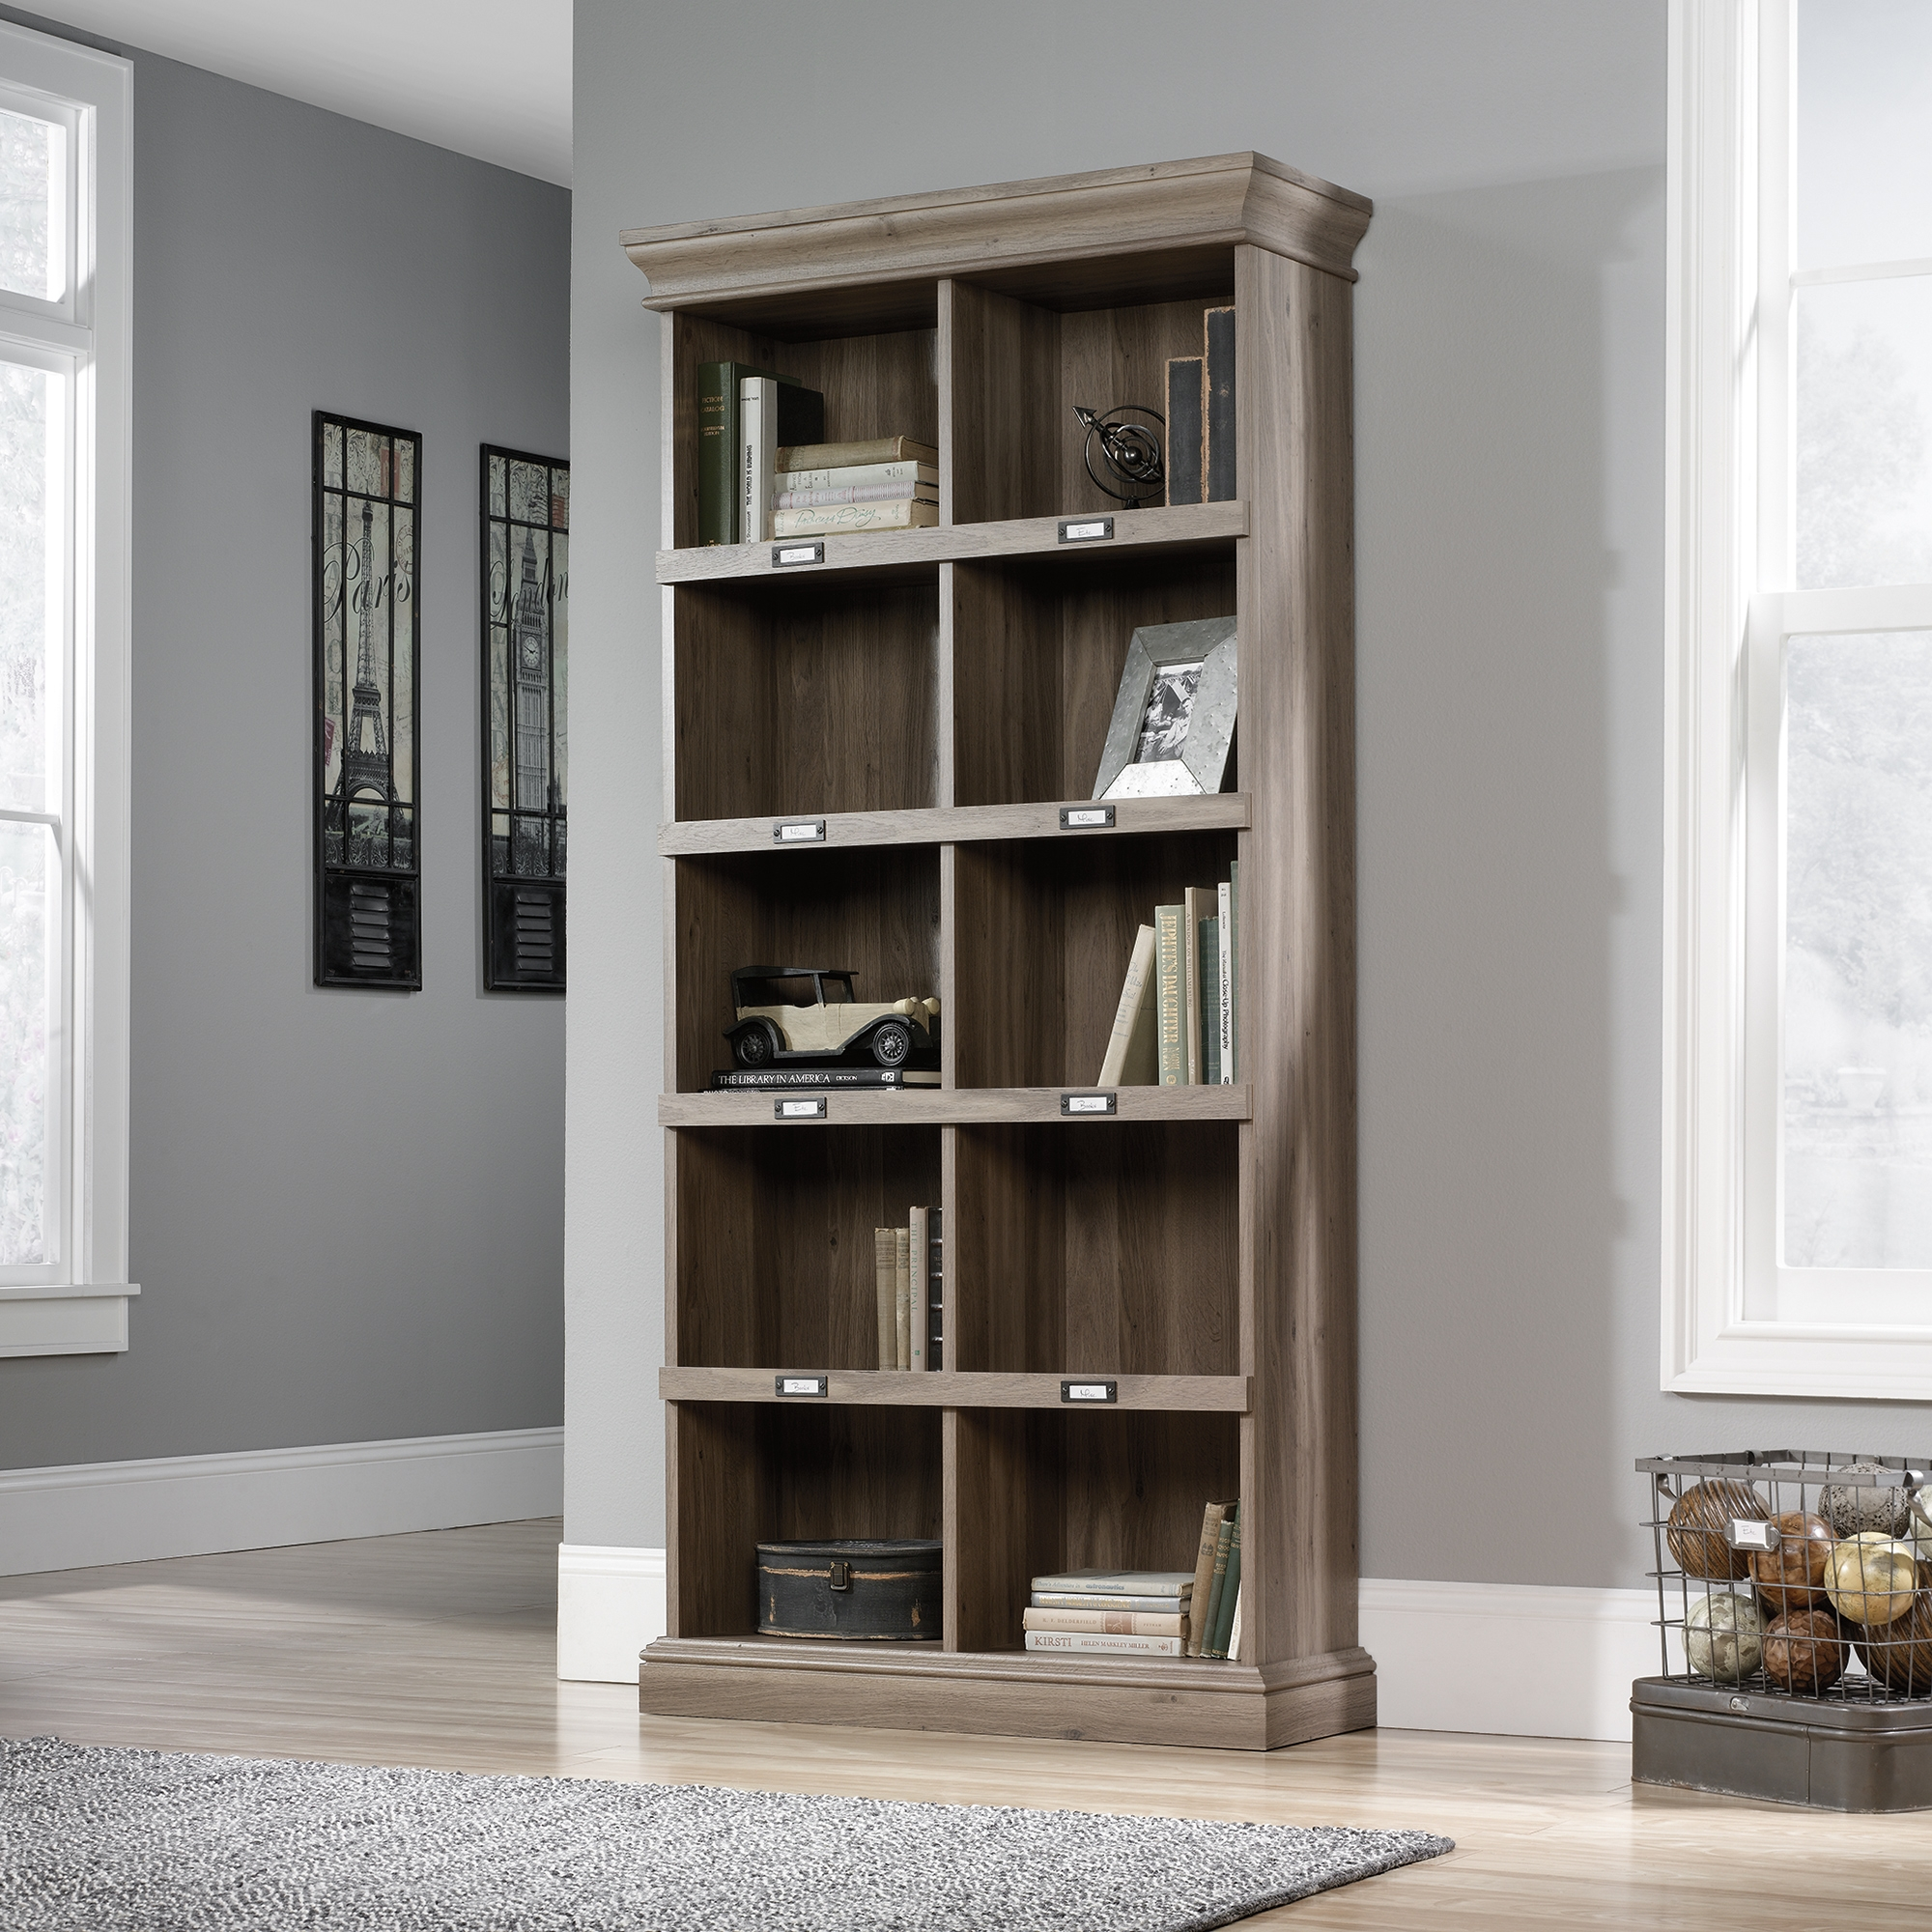 wall full of bookcase diy home bookcases furniture enclosed decorating unique size house welcometonursinghello ideas with bookshelves on fresh